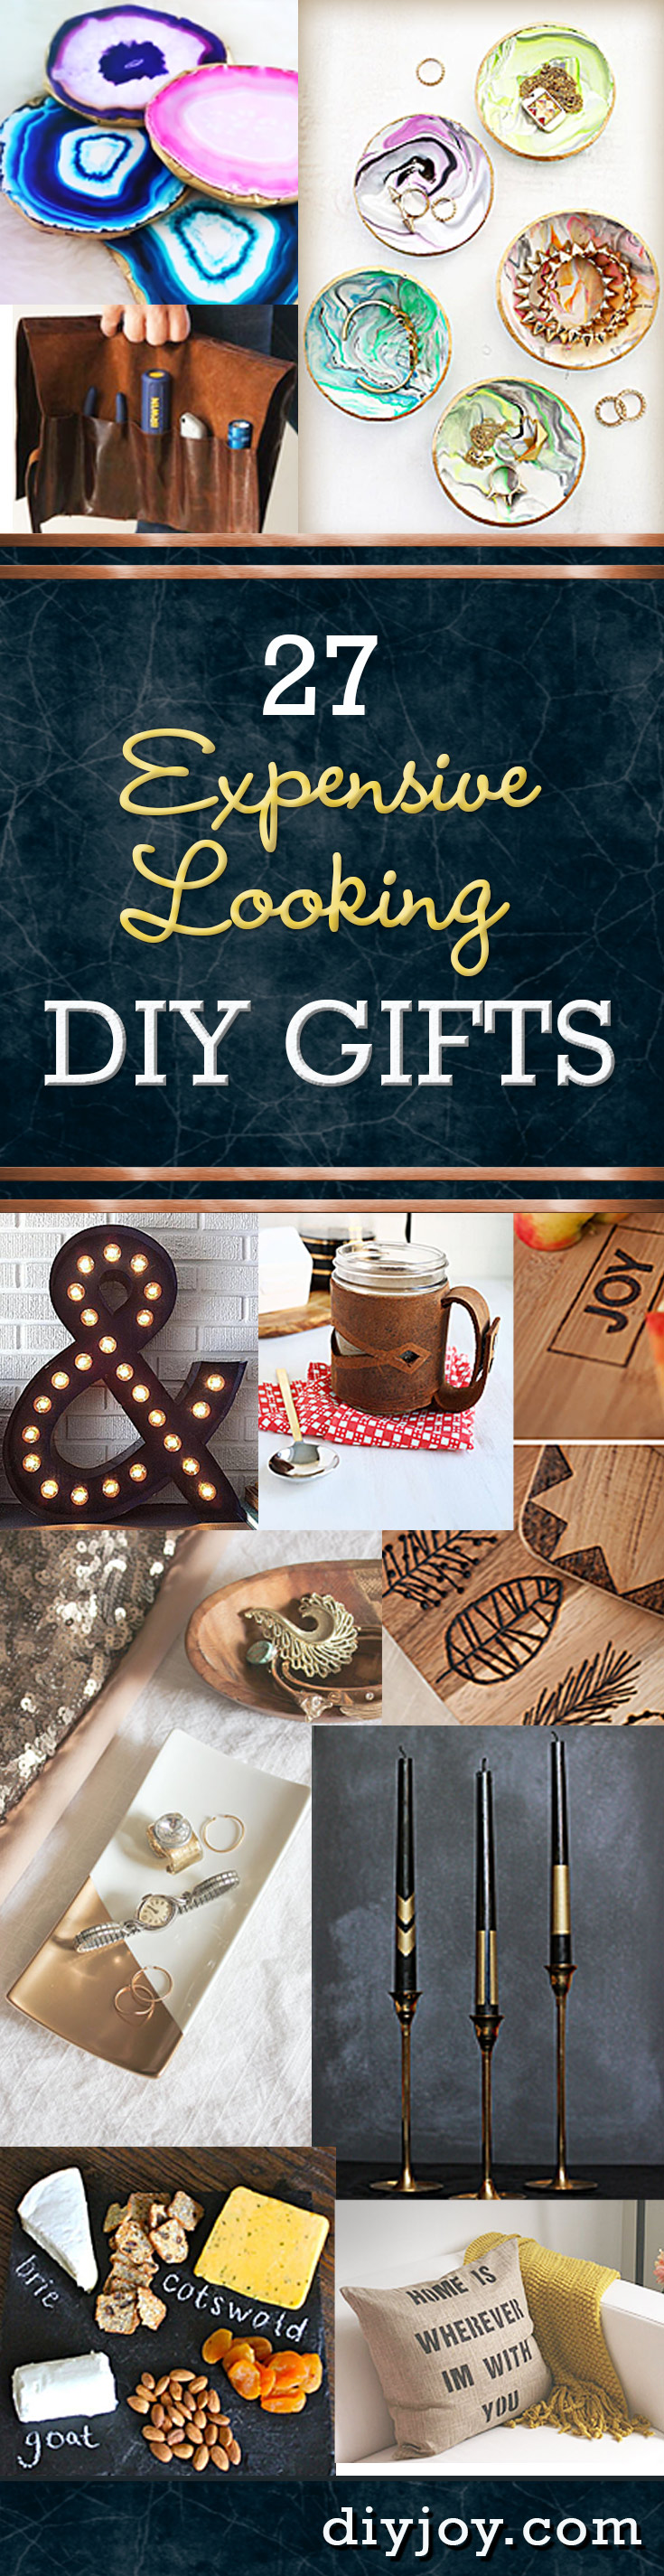 Diy Pinterest Inexpensive Diy Gifts To Make For Christmas Birthdays Diy Joy